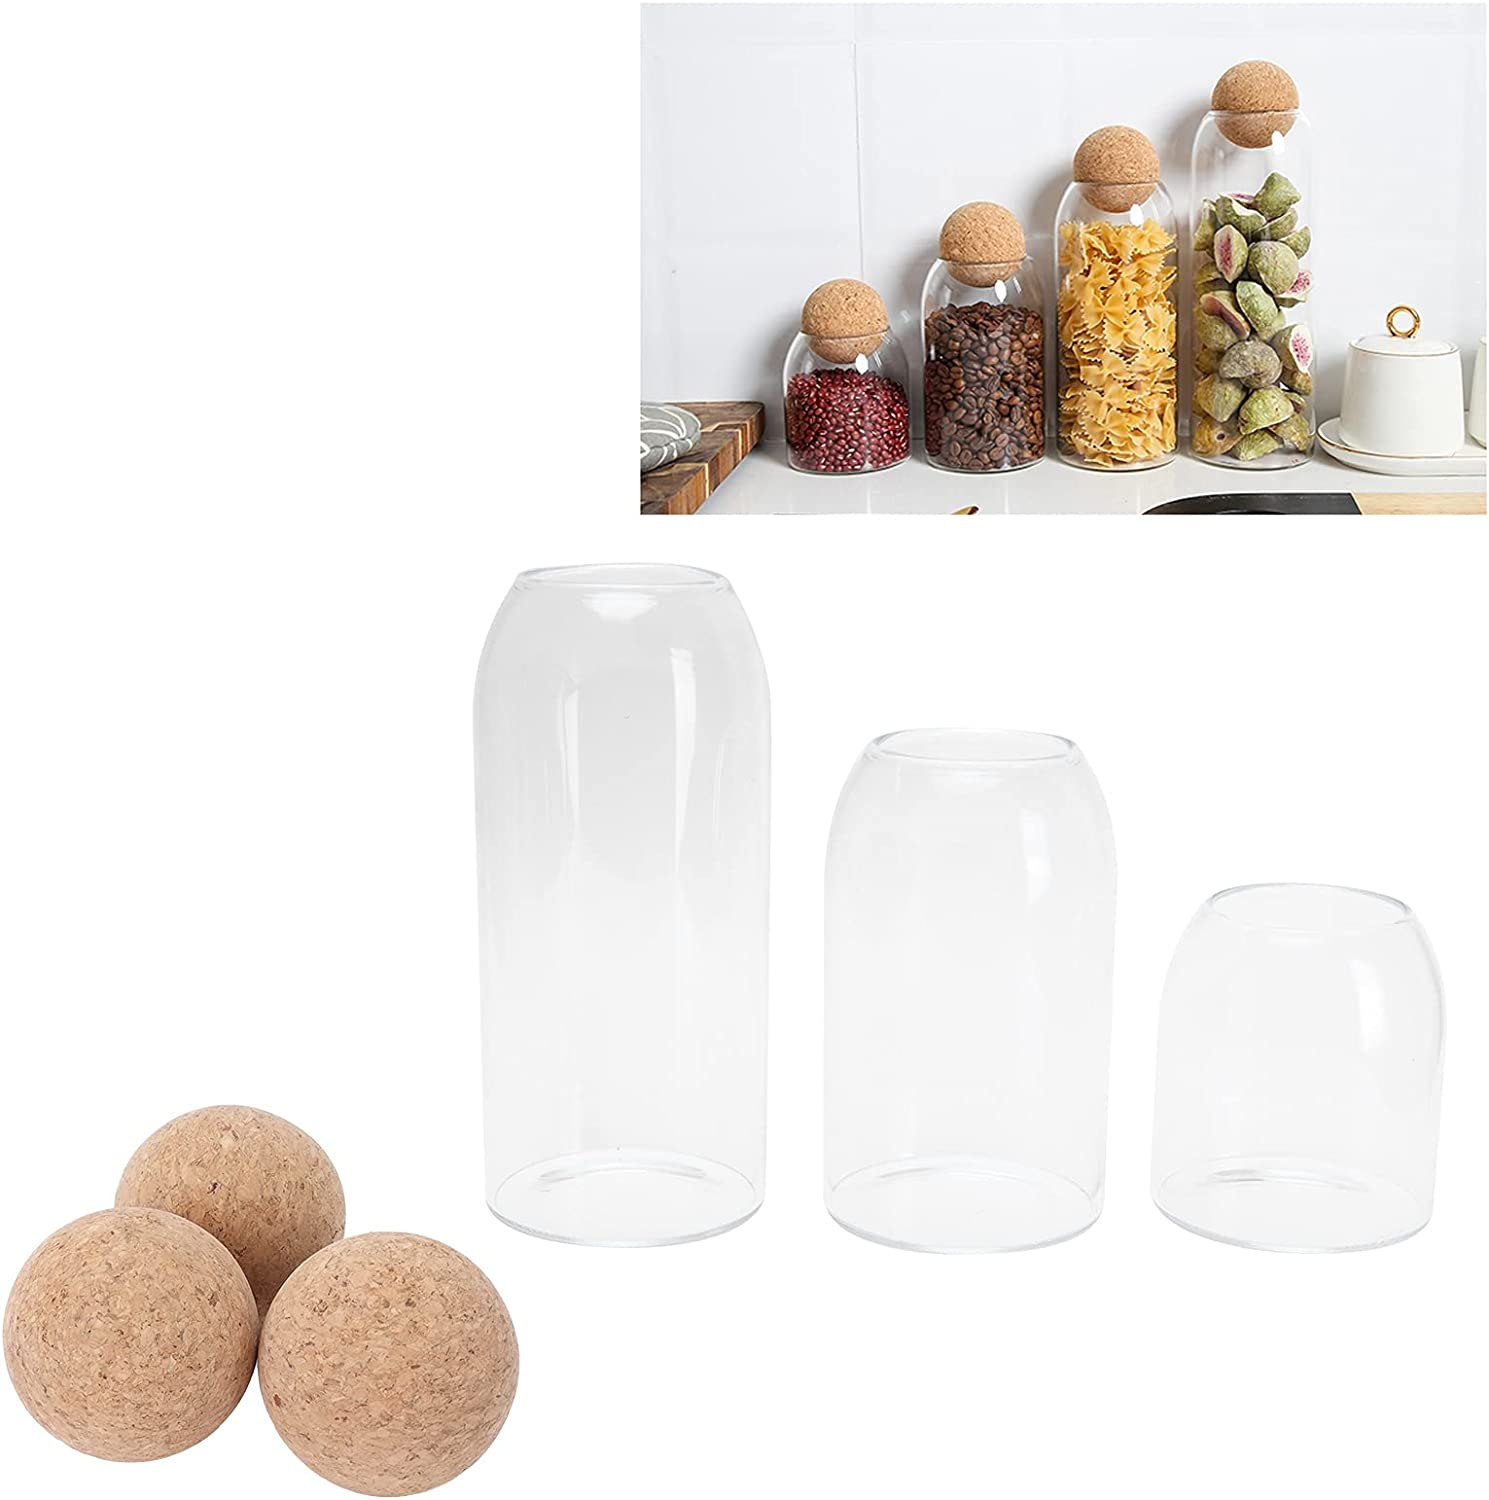 Tea Canisters Storage Containers Max 53% 5 ☆ popular OFF Lightweight L Sealed Round for